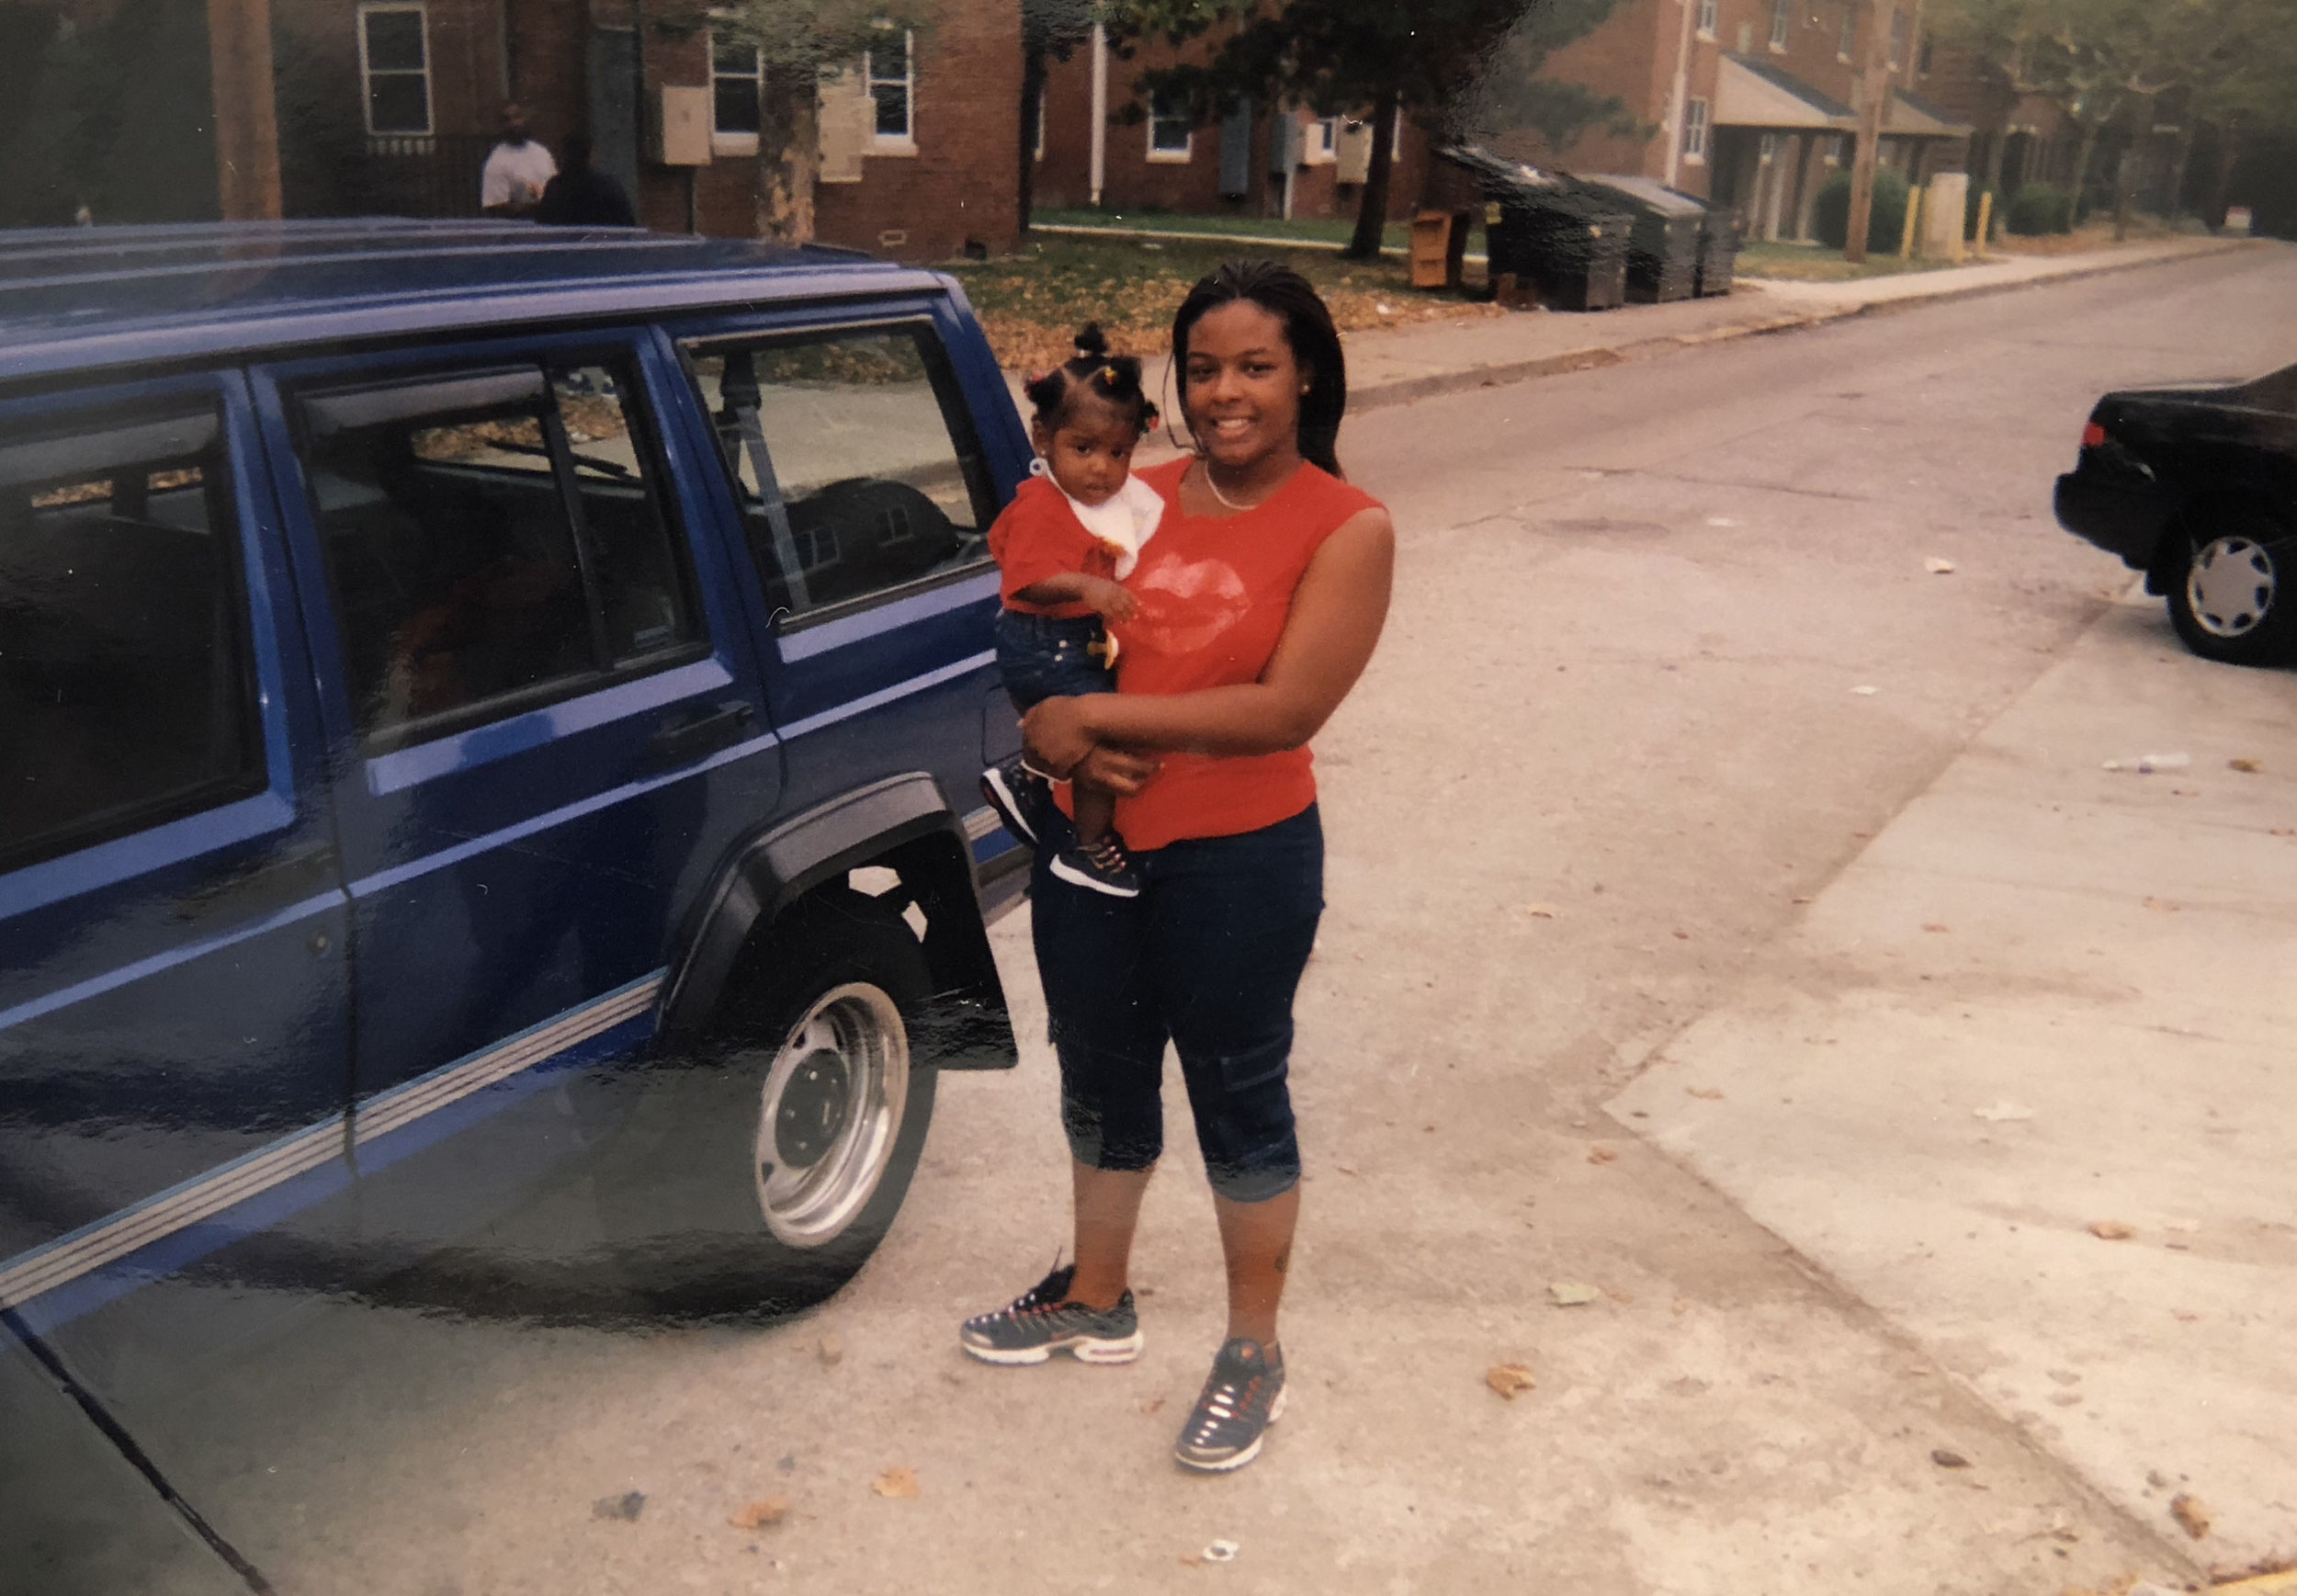 Clinetta Hill-Jackson pictured with her daughter on Bentley Drive. Courtesy of Clinetta Hill-Jackson.